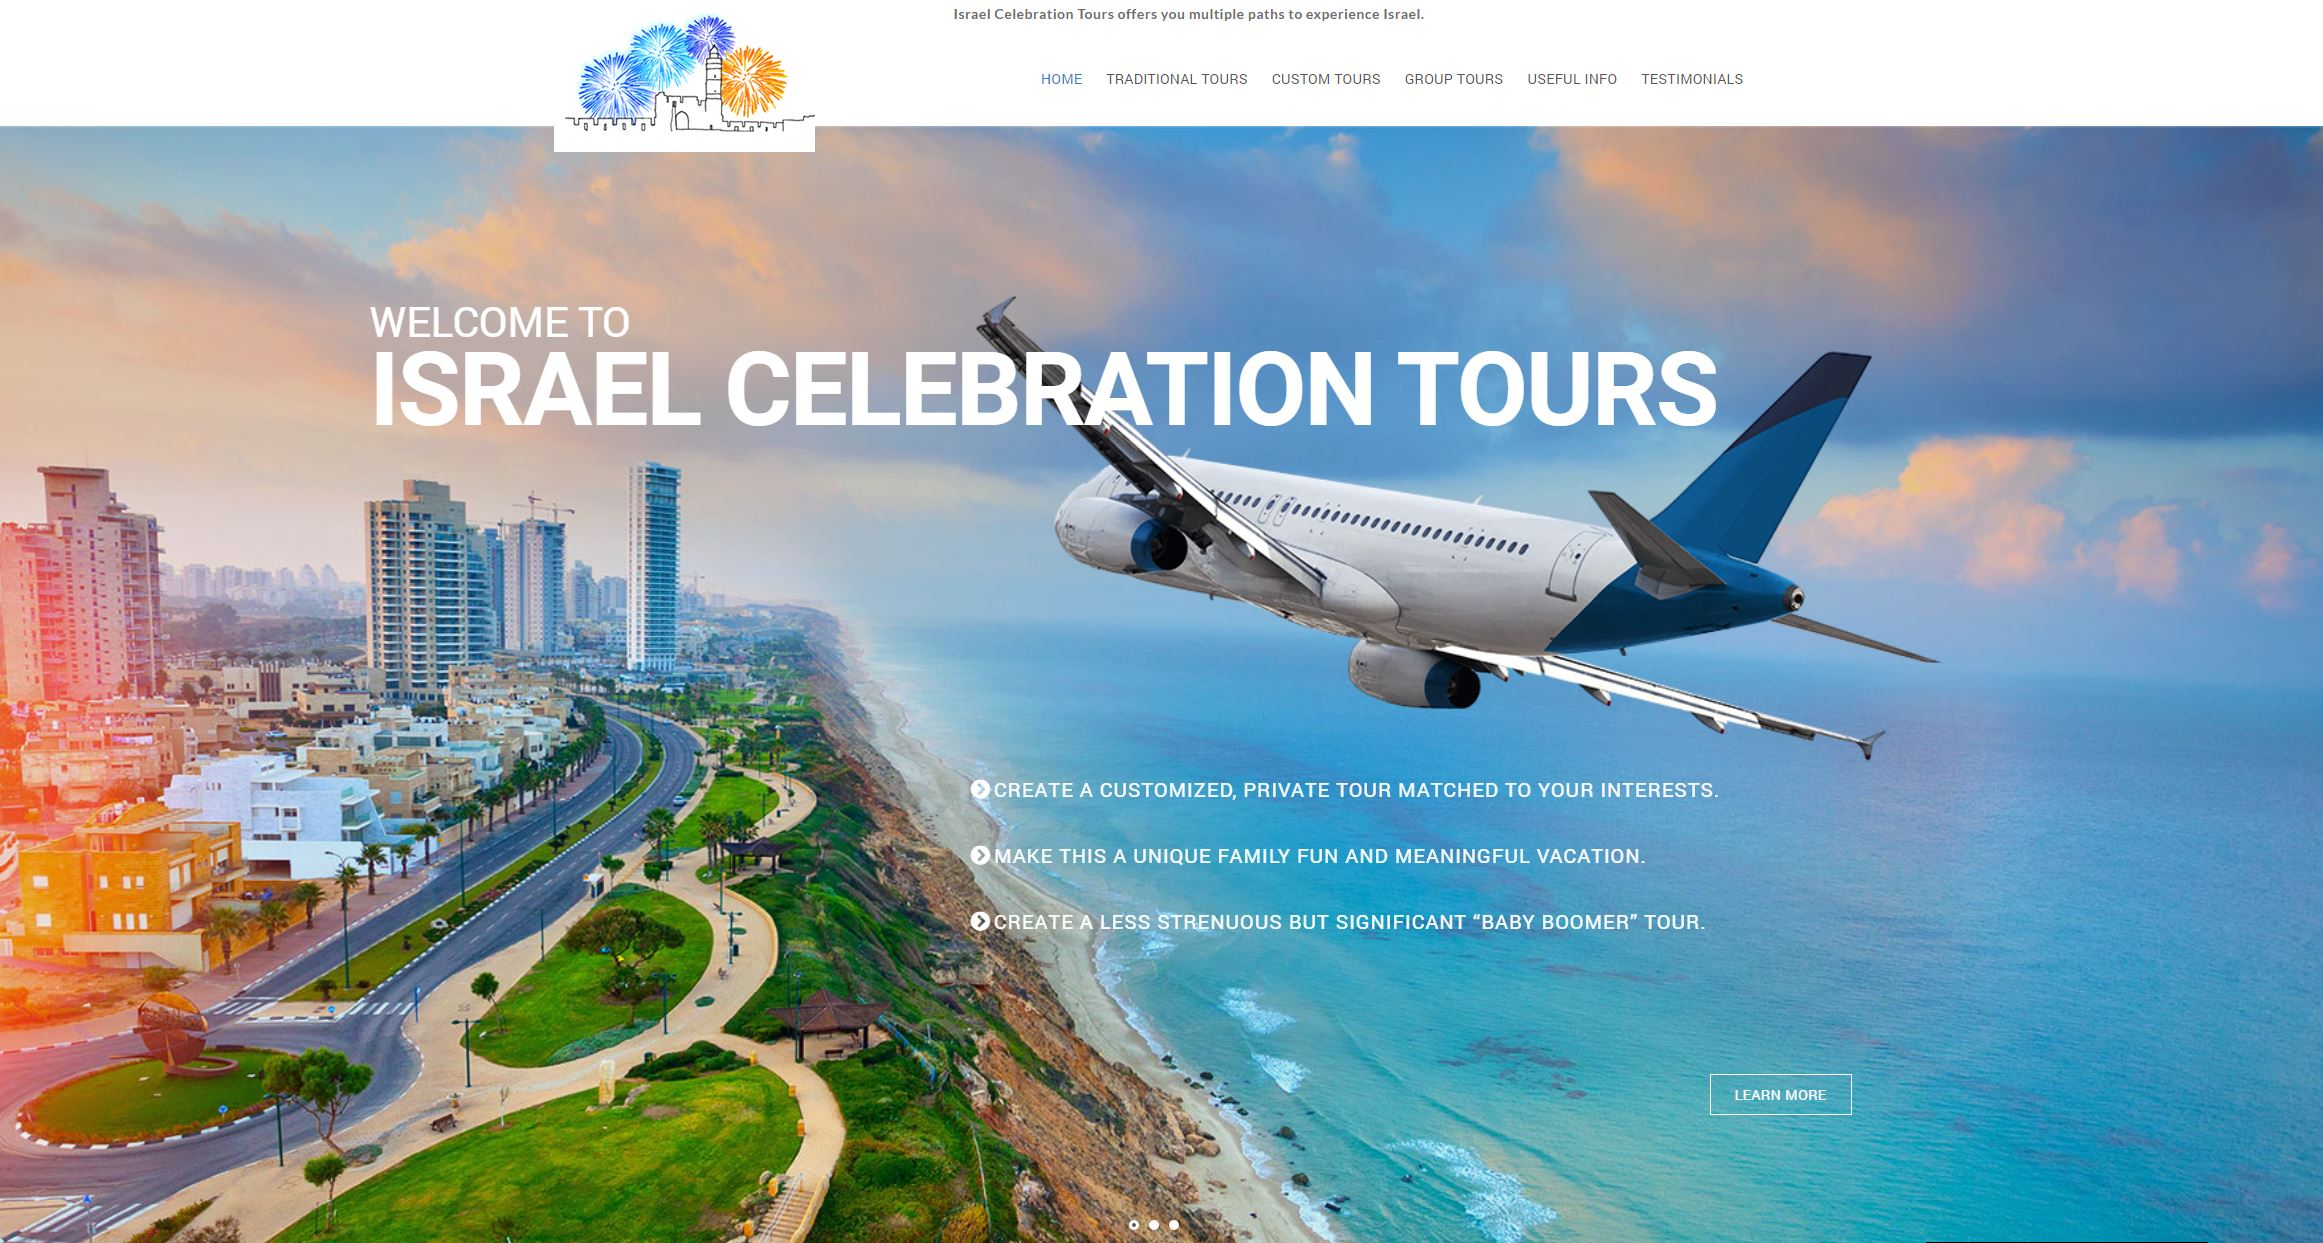 Israel Celebration Tours website